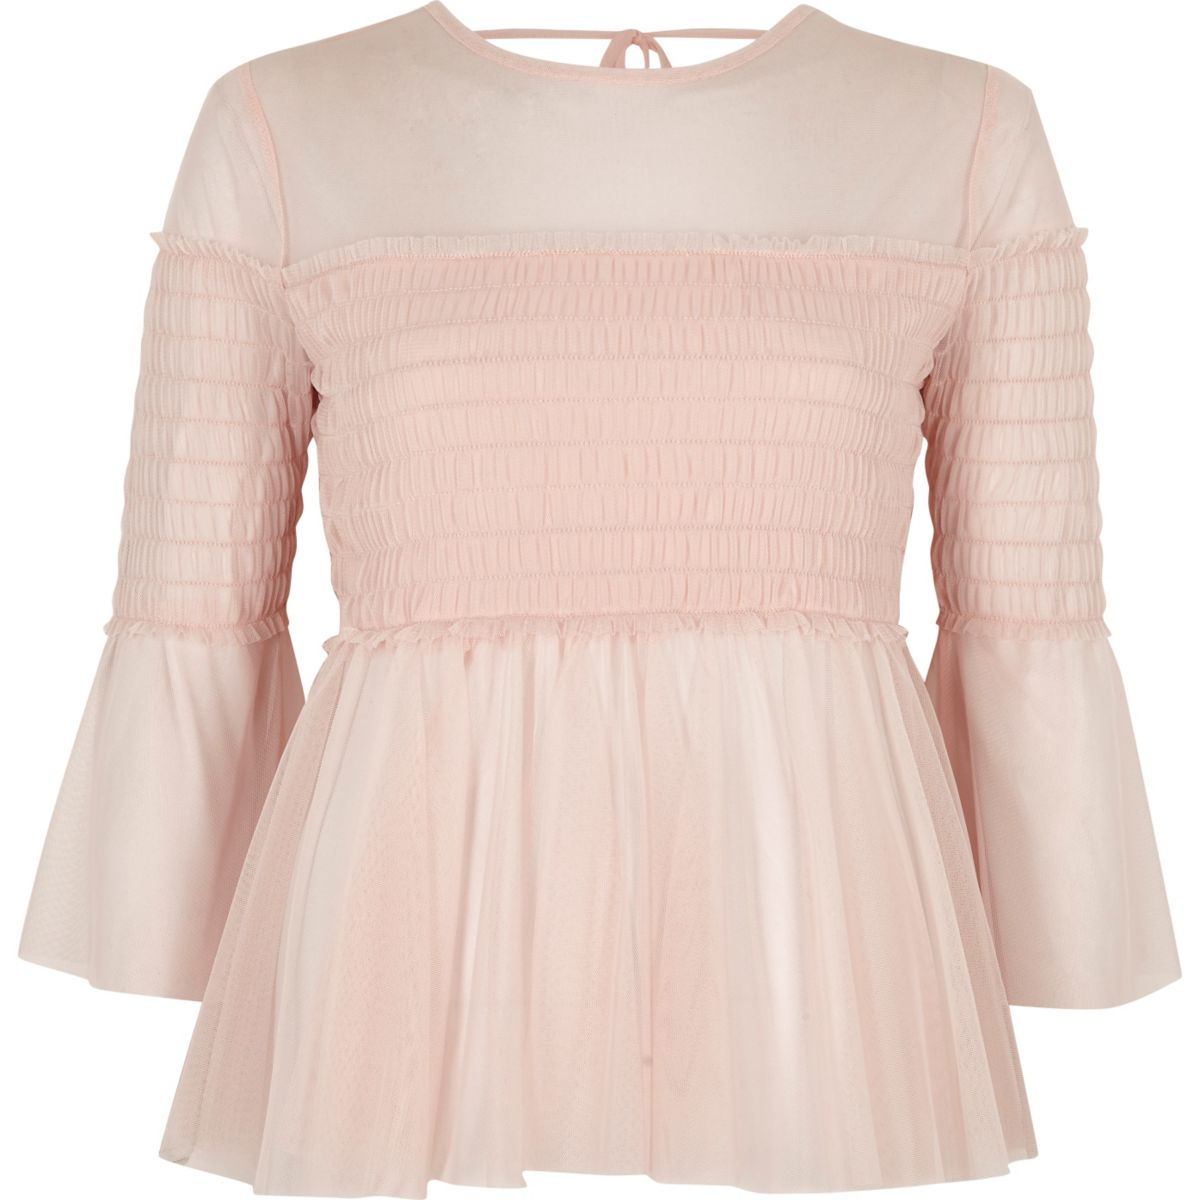 Light pink mesh pleated smock top